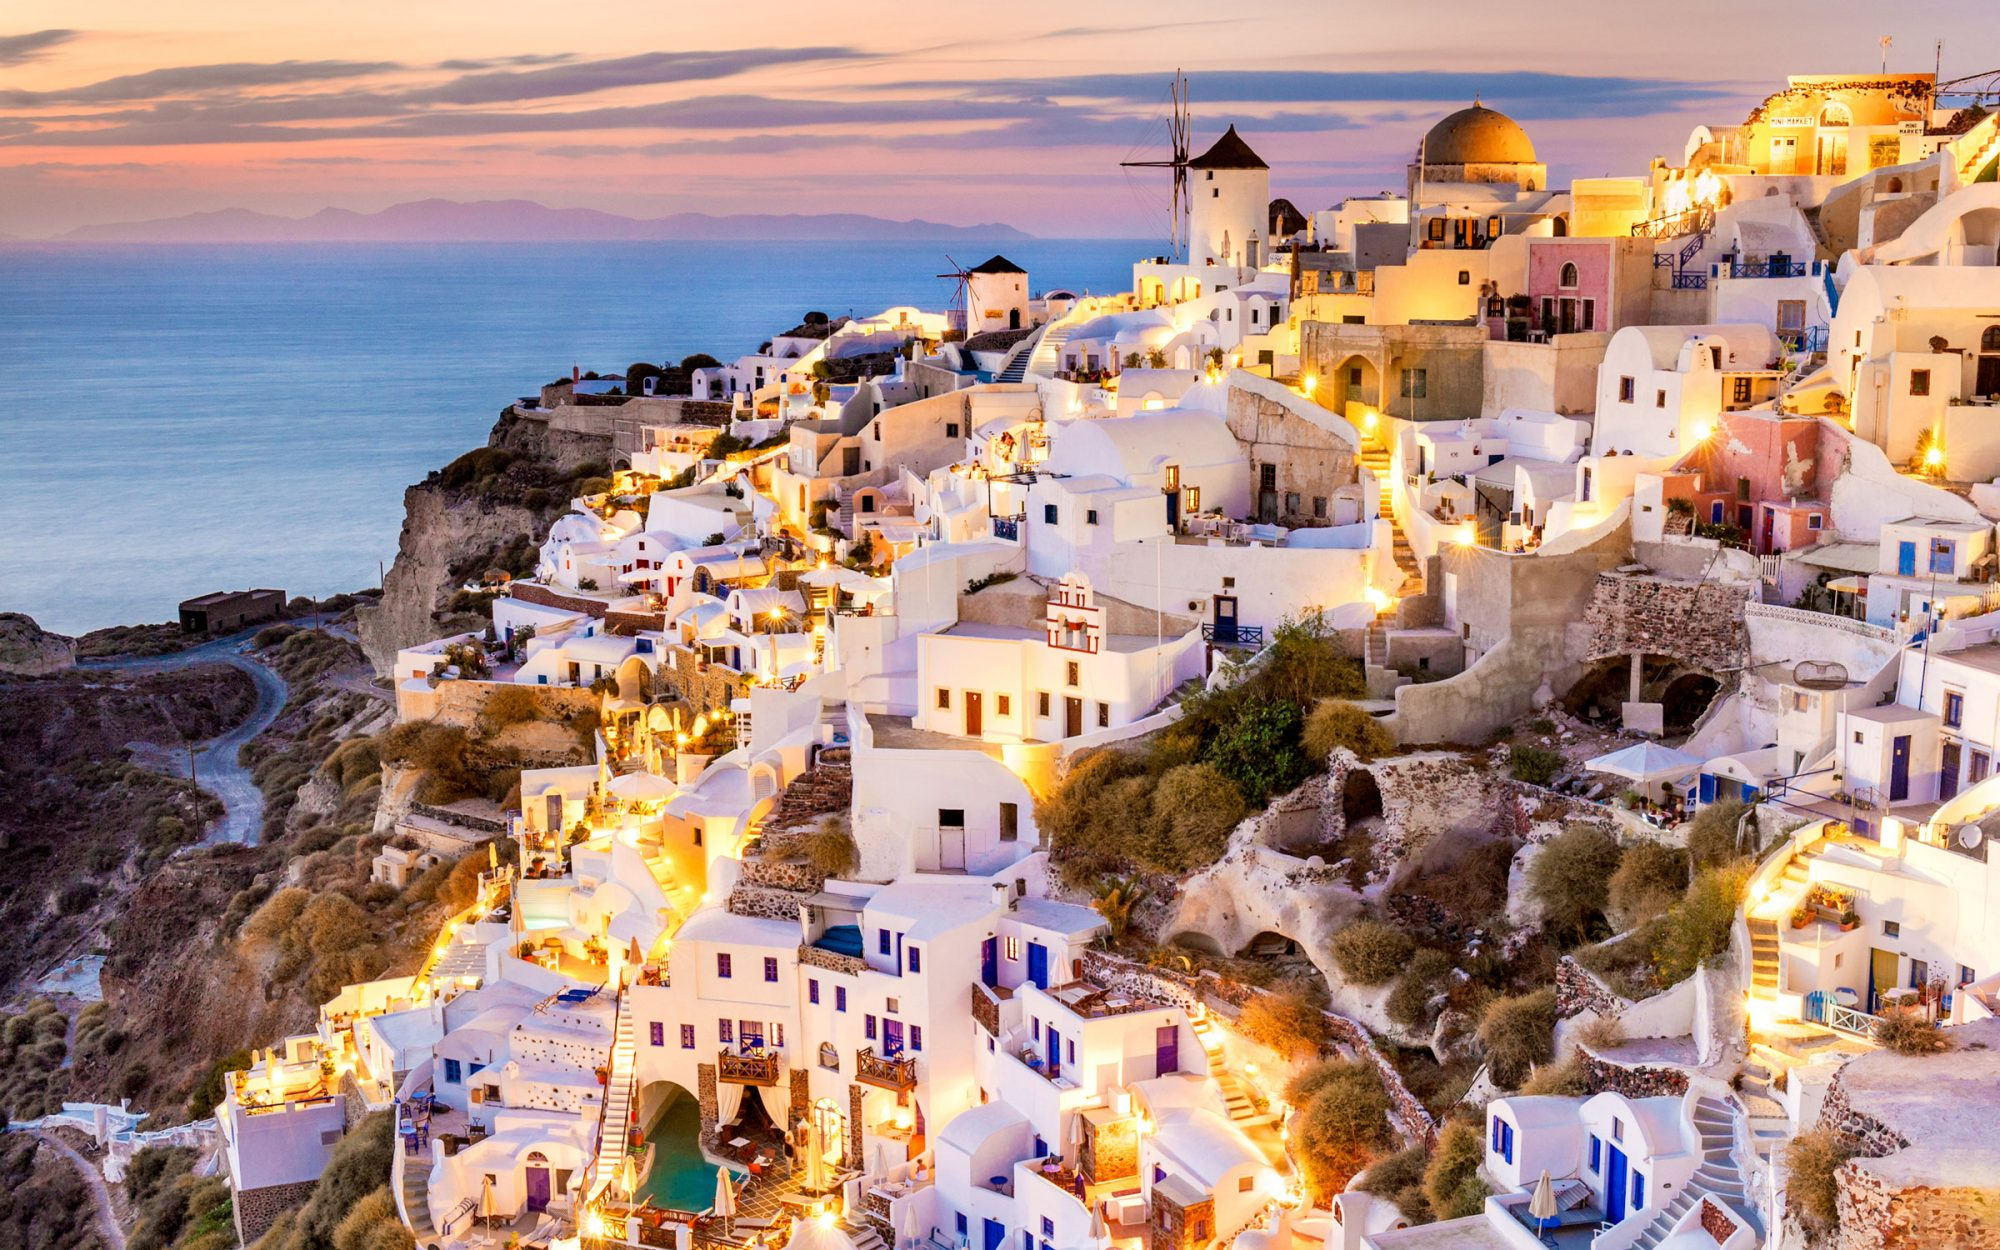 11 Stunning Photos of Sunsets in Santorini